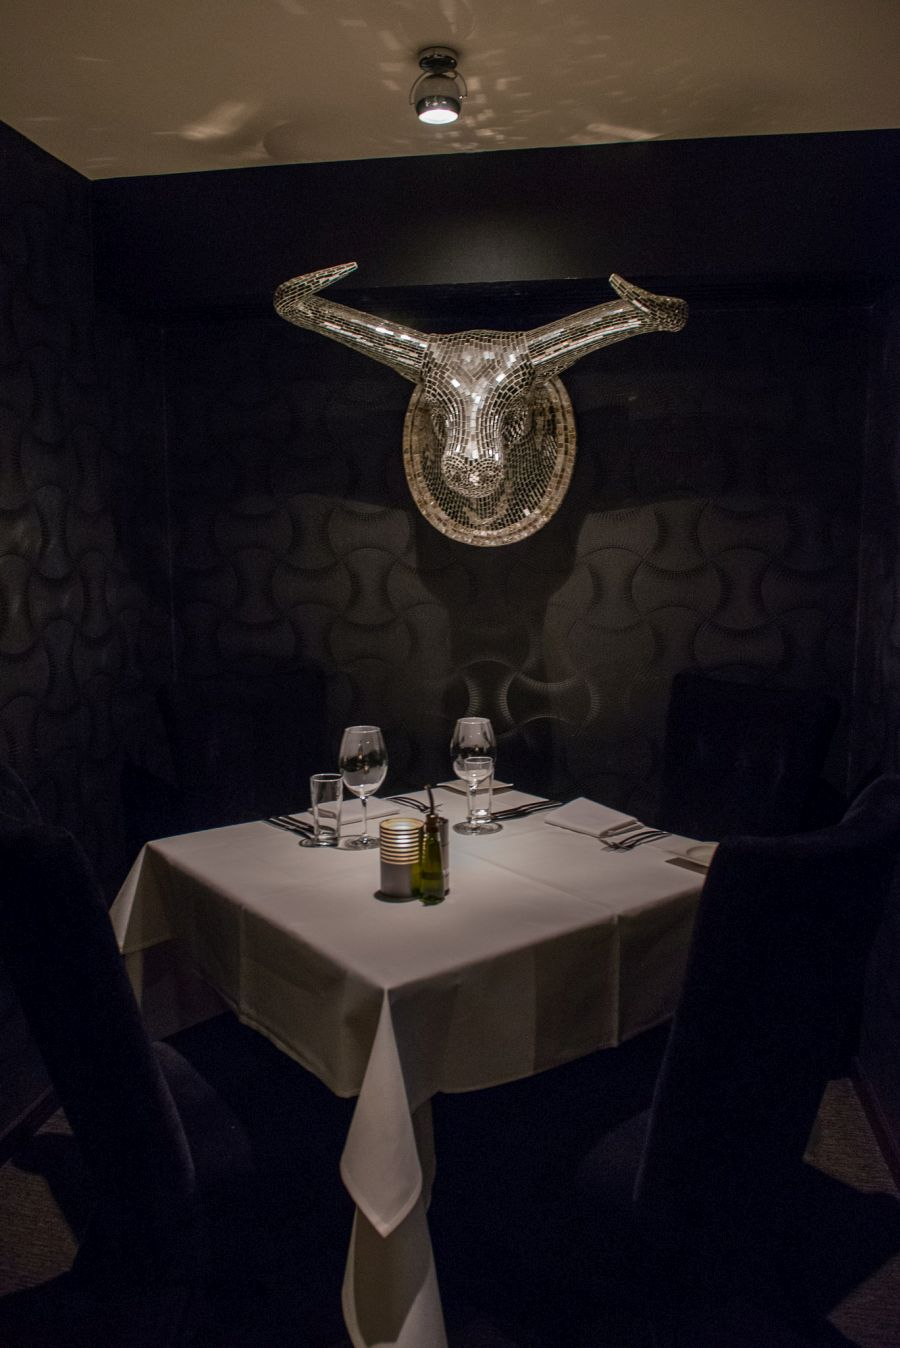 Booths like this provide more intimate dining